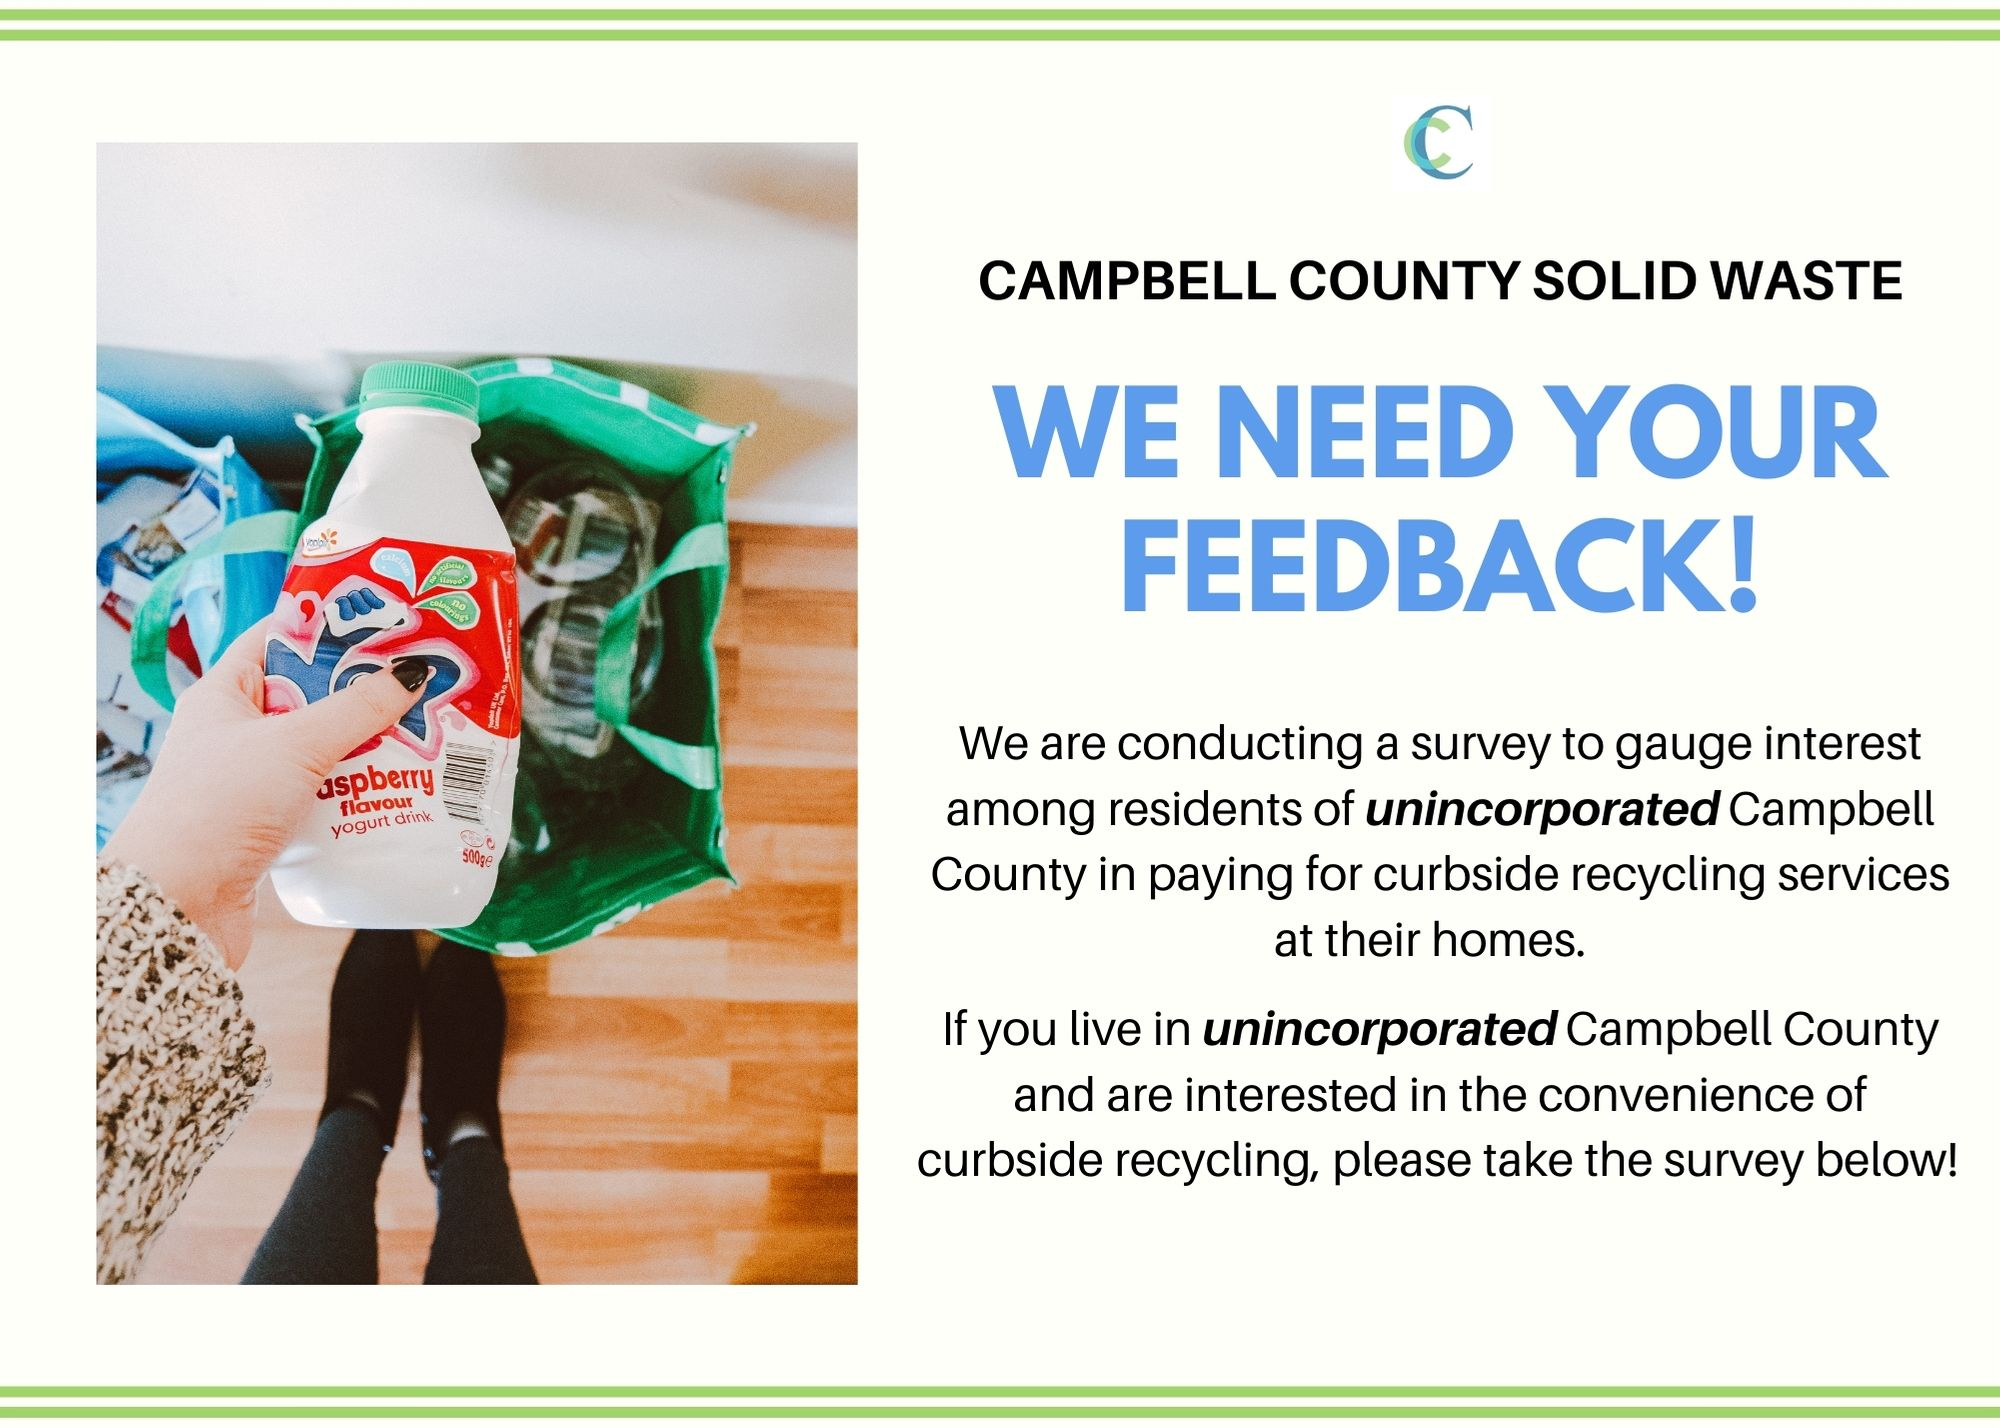 Curbside Recycling Survey